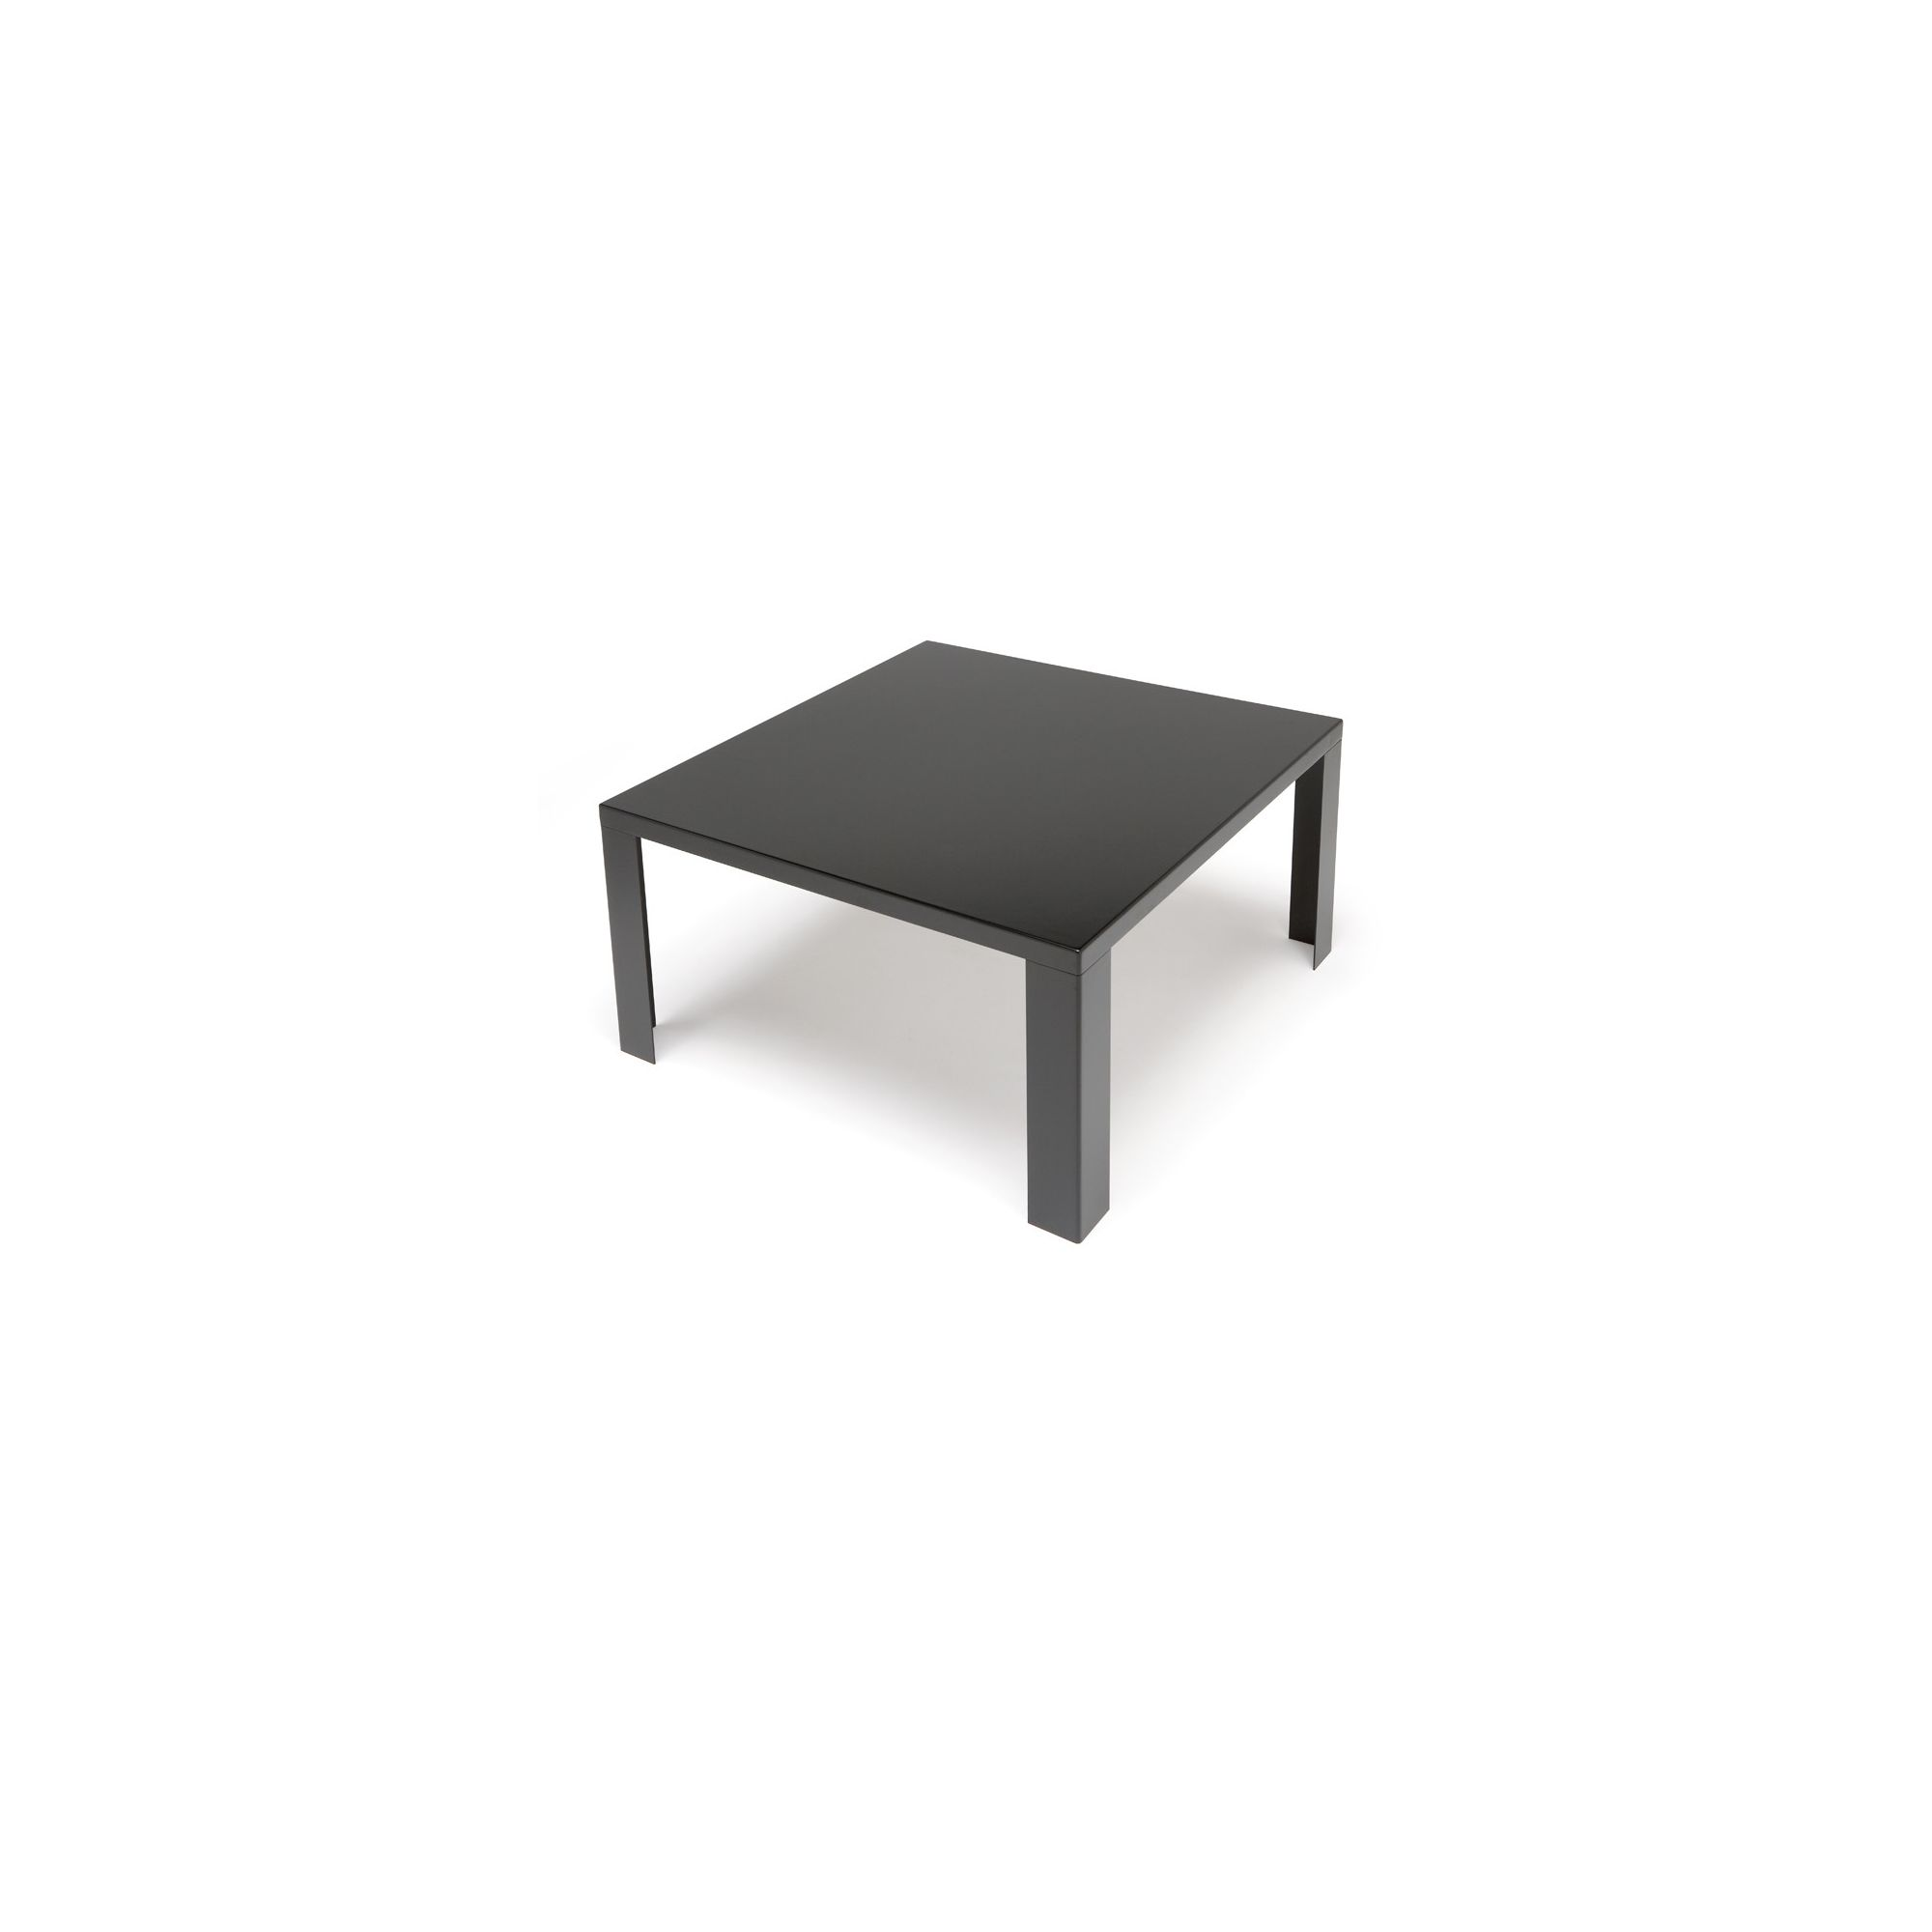 Andreu World Pure Coffee Table - 34cm x 90cm x 90cm - Black at Tesco Direct